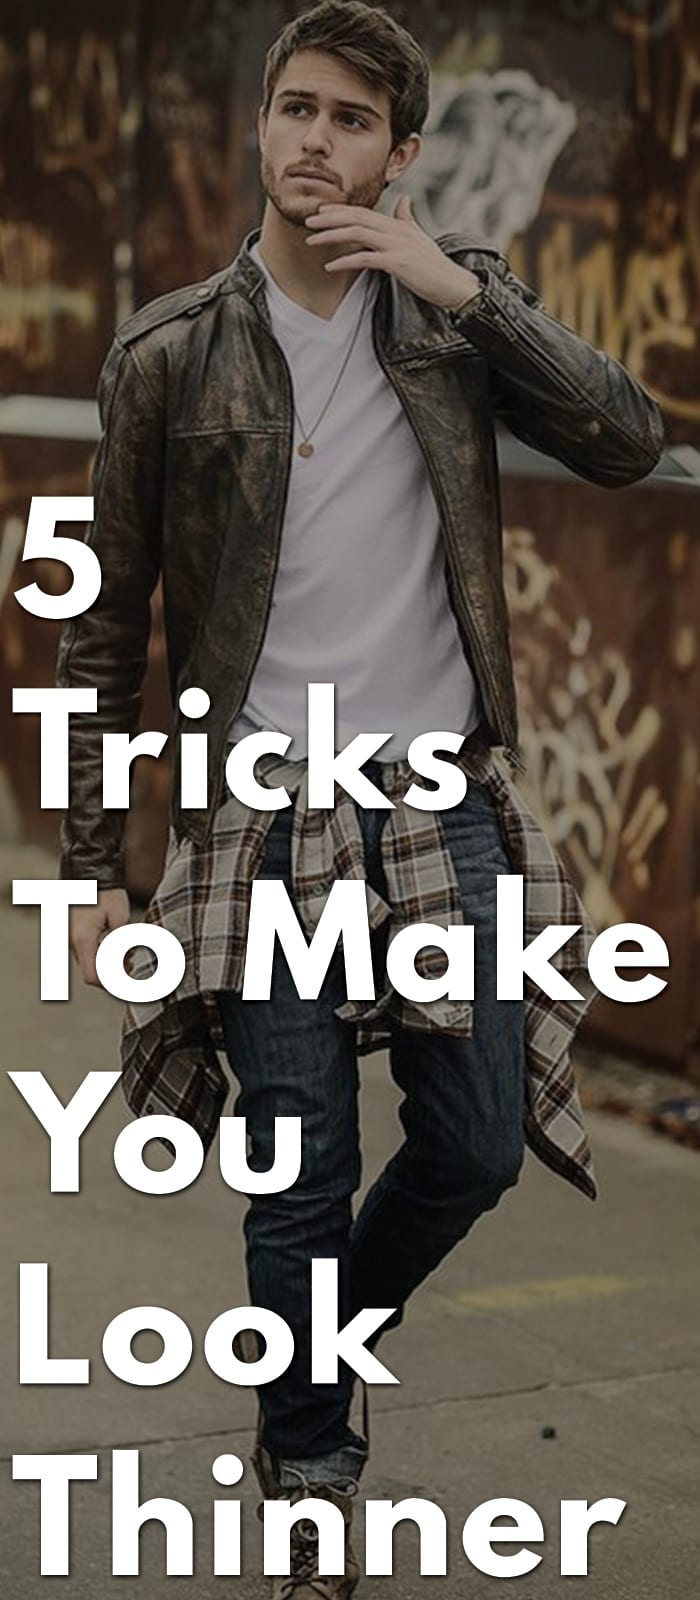 5-Tricks-To-Make-You-Look-Thinner